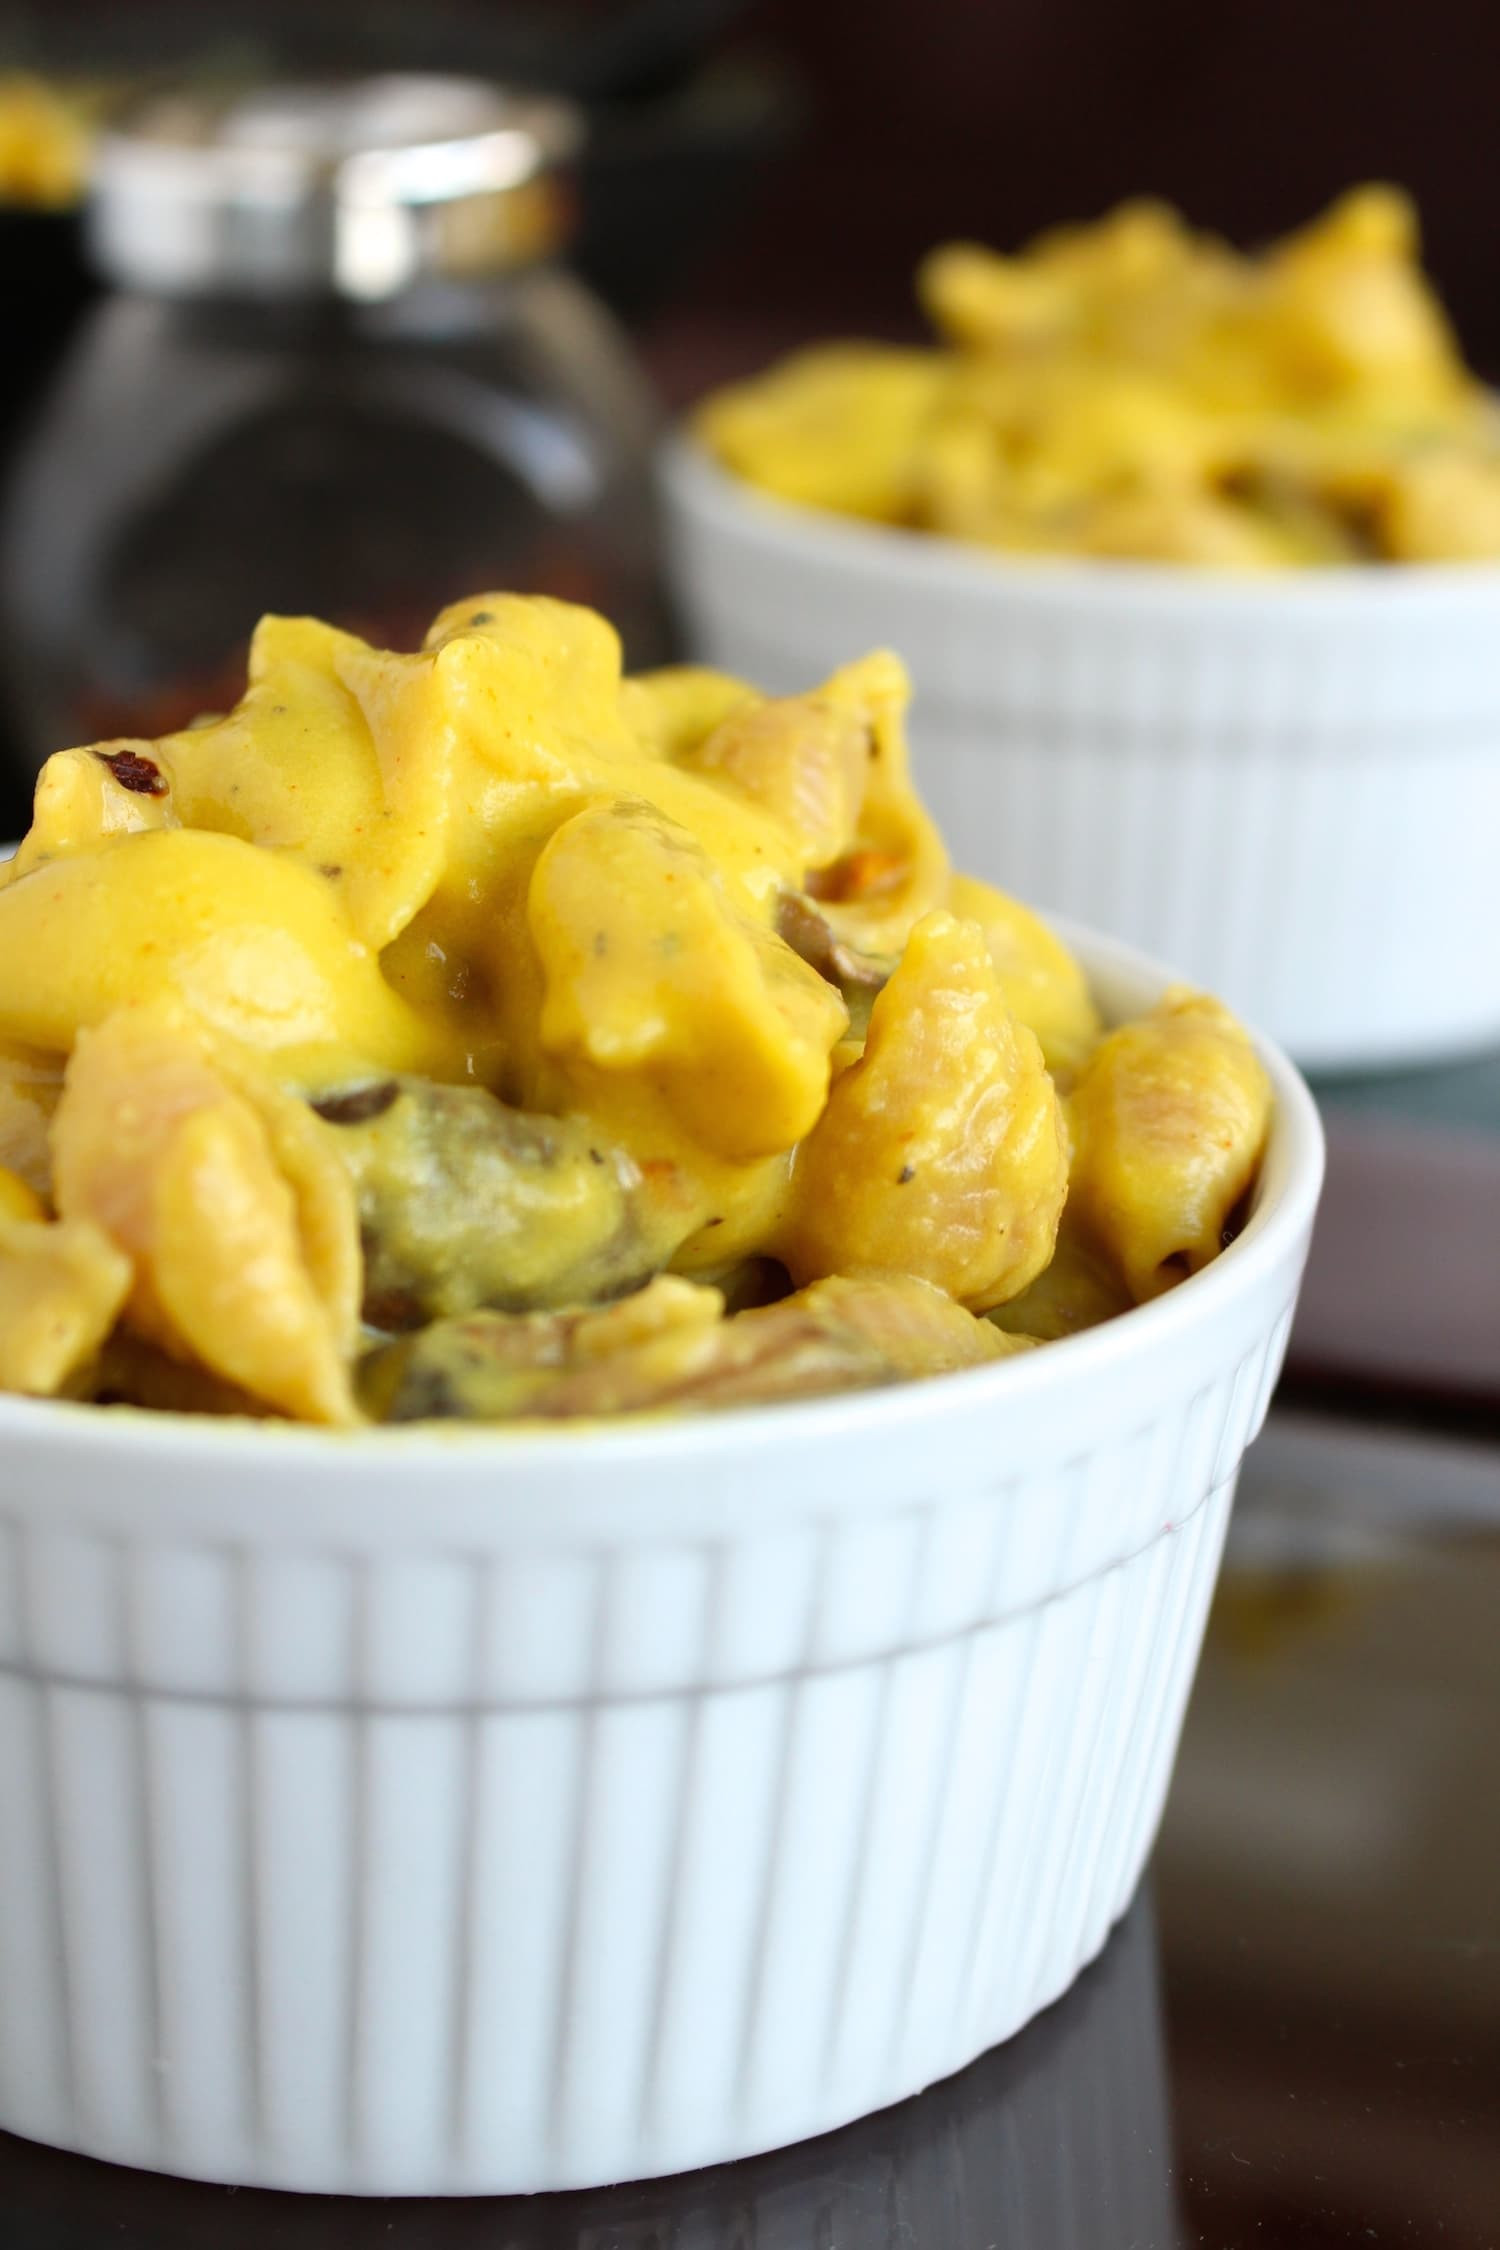 Low Fat Mac And Cheese Recipes  Gluten Free Low Fat Vegan Mac and Cheese